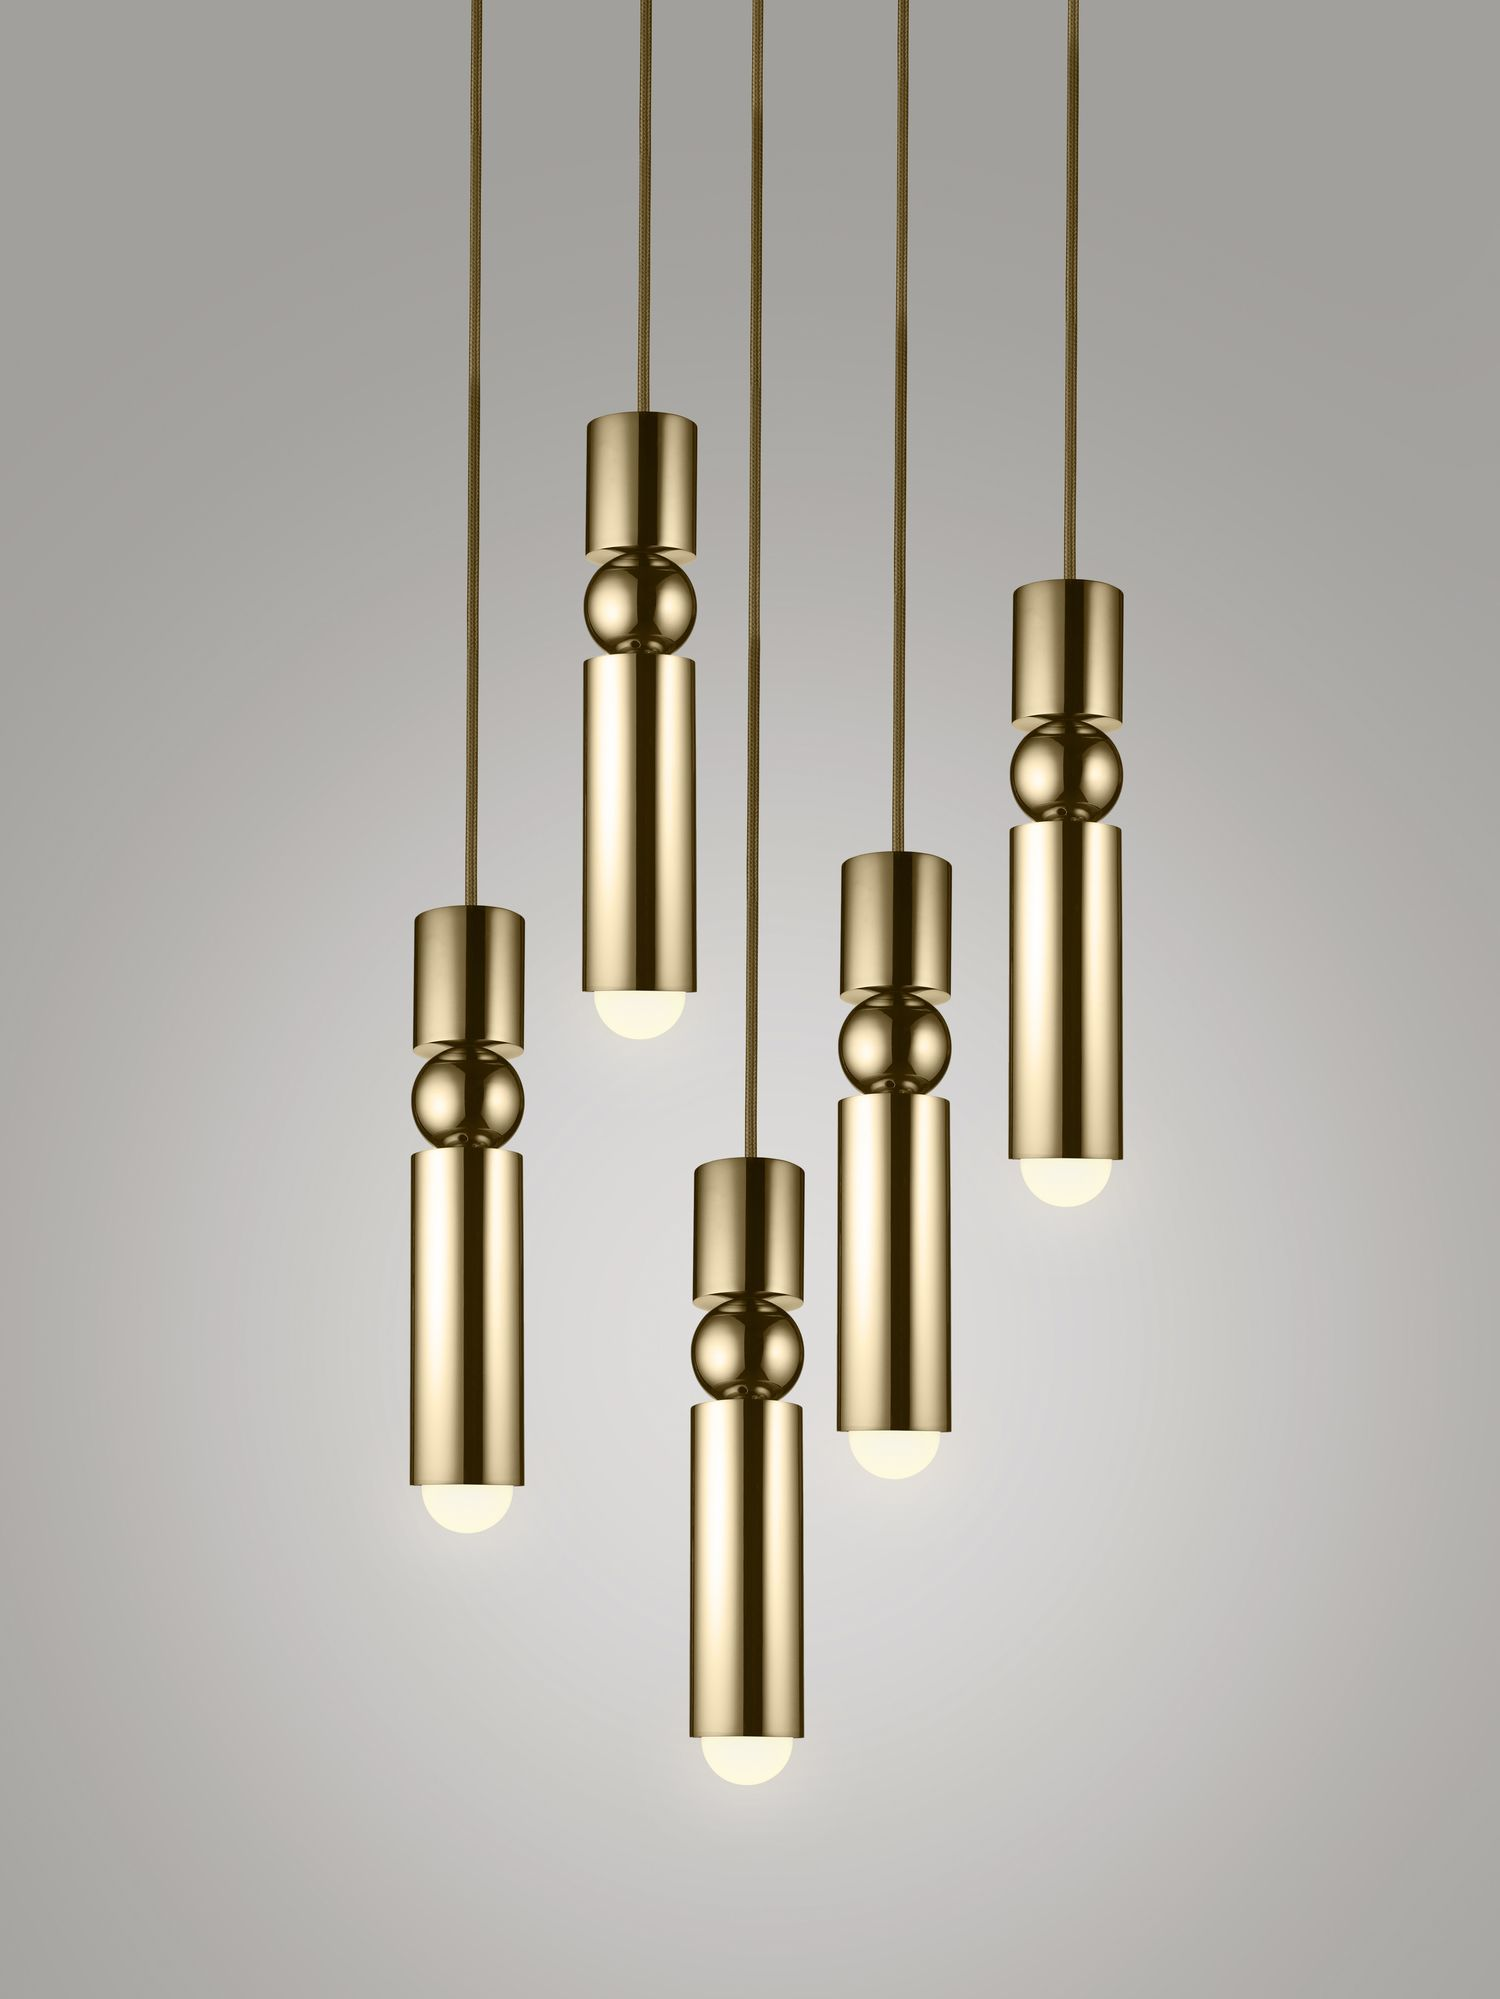 Statement Lighting By Lee Broom